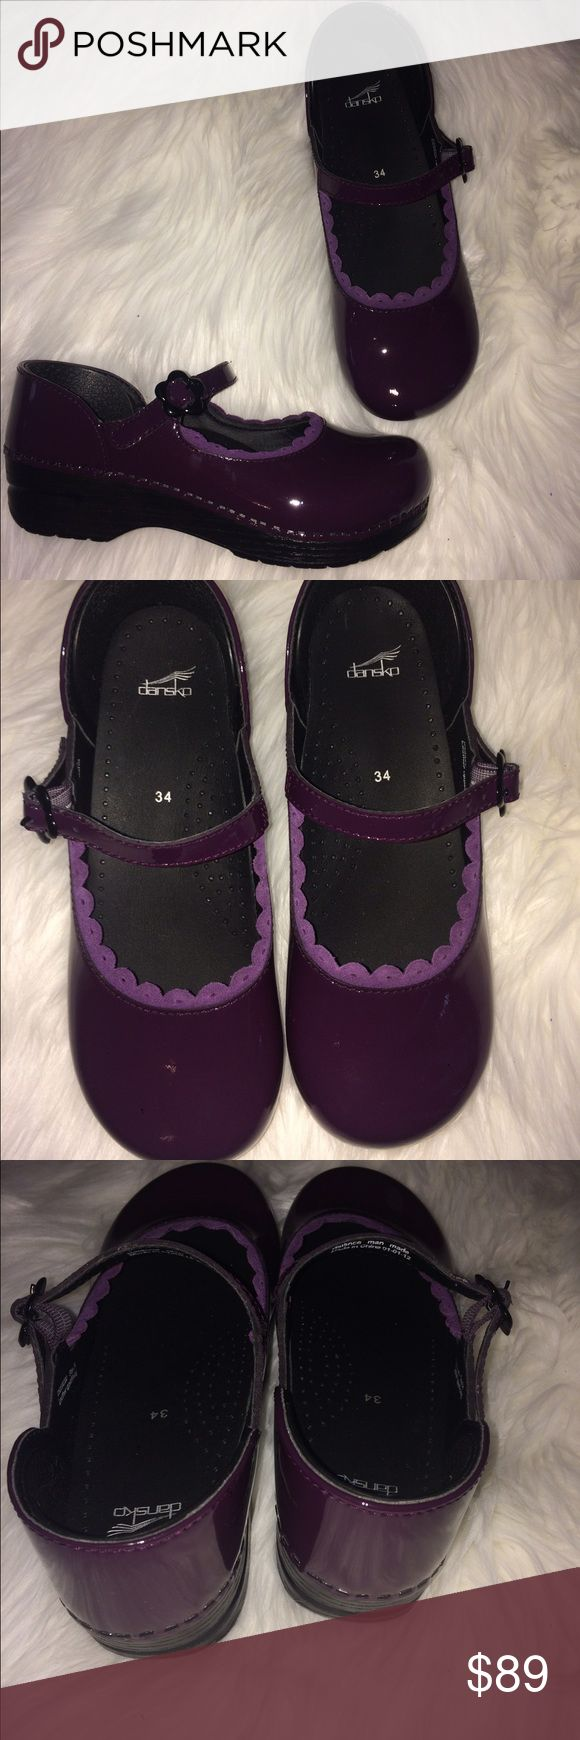 ‼️SALE‼️Brand new Dansko Clogs size 4 Gorgeous brand new pair of Dansko professional Clogs authentic in a beautiful Egg Plant Color. Side Mary Jane buckle. Beautiful pair ! Fast Shipping! Dansko Shoes Mules & Clogs